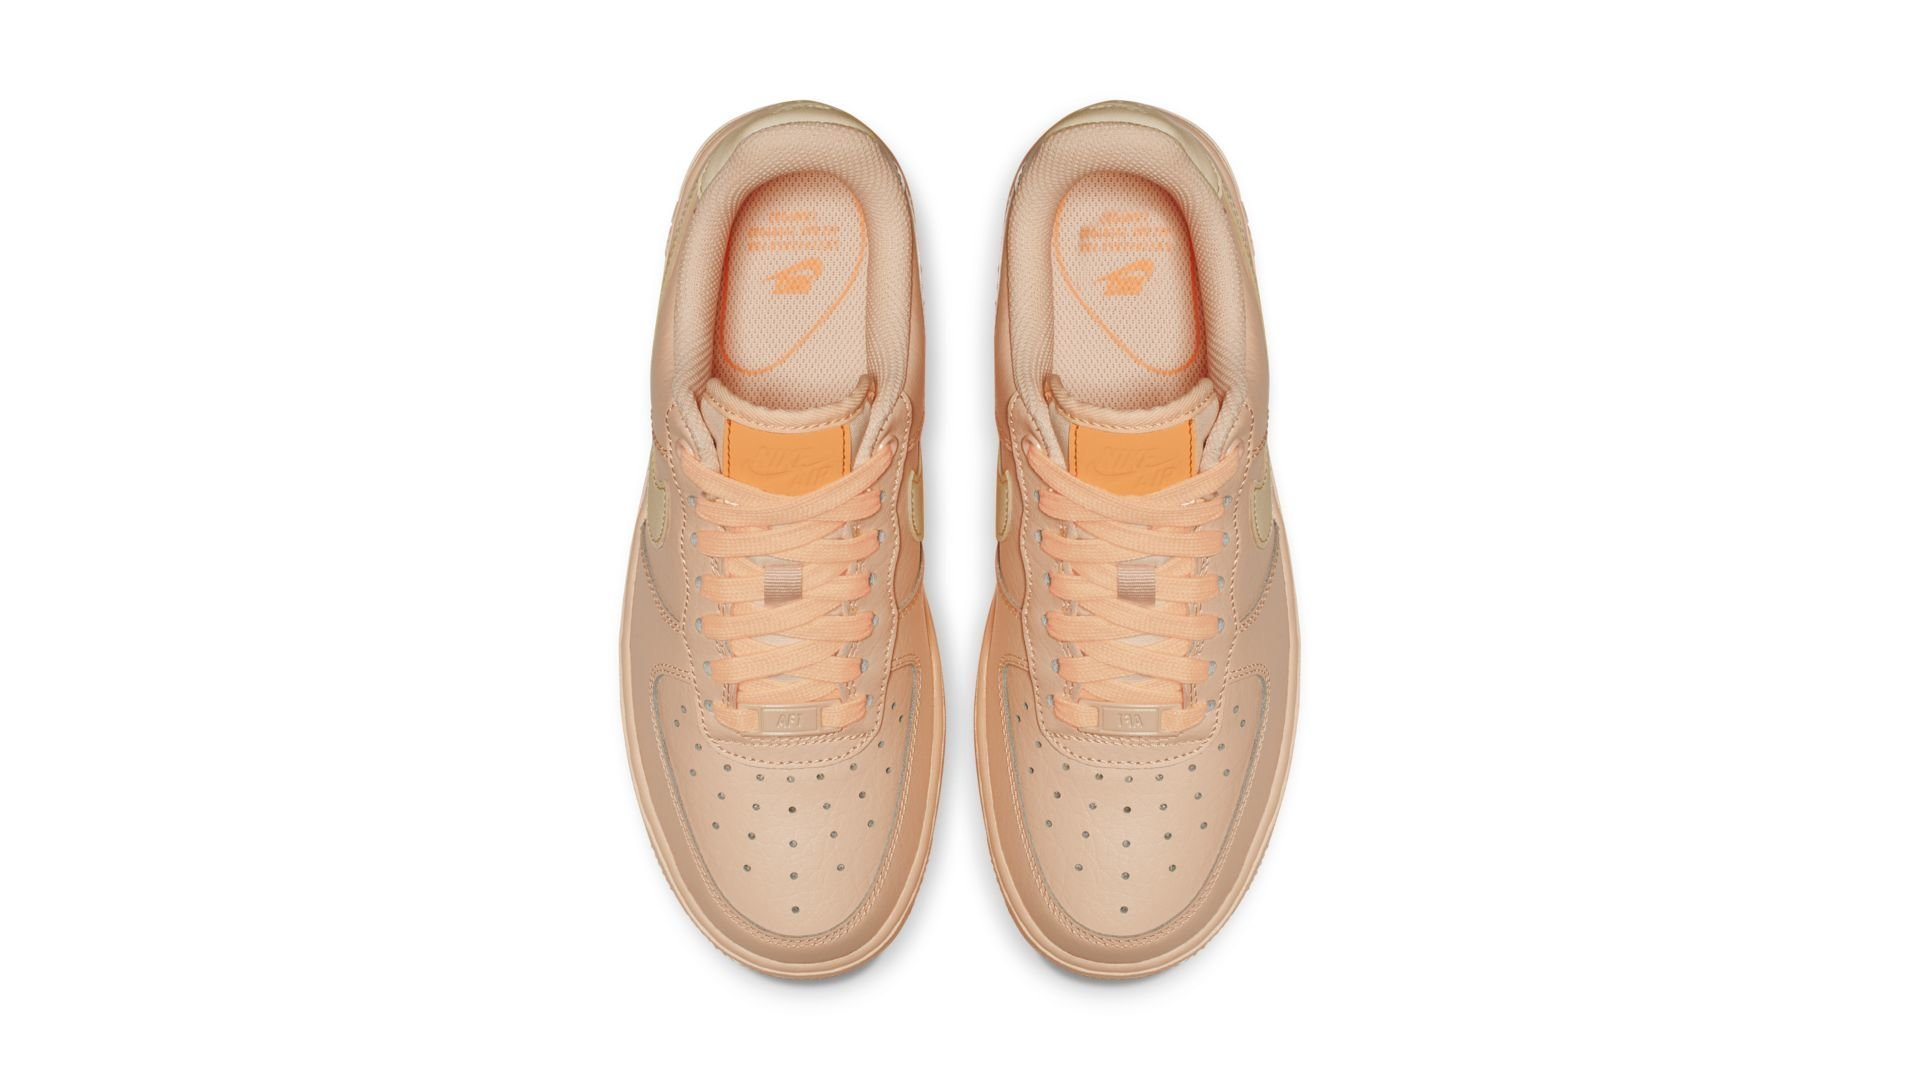 Nike WMNS Air Force 1 '07 Essential 'Tint' (AO2132-800)